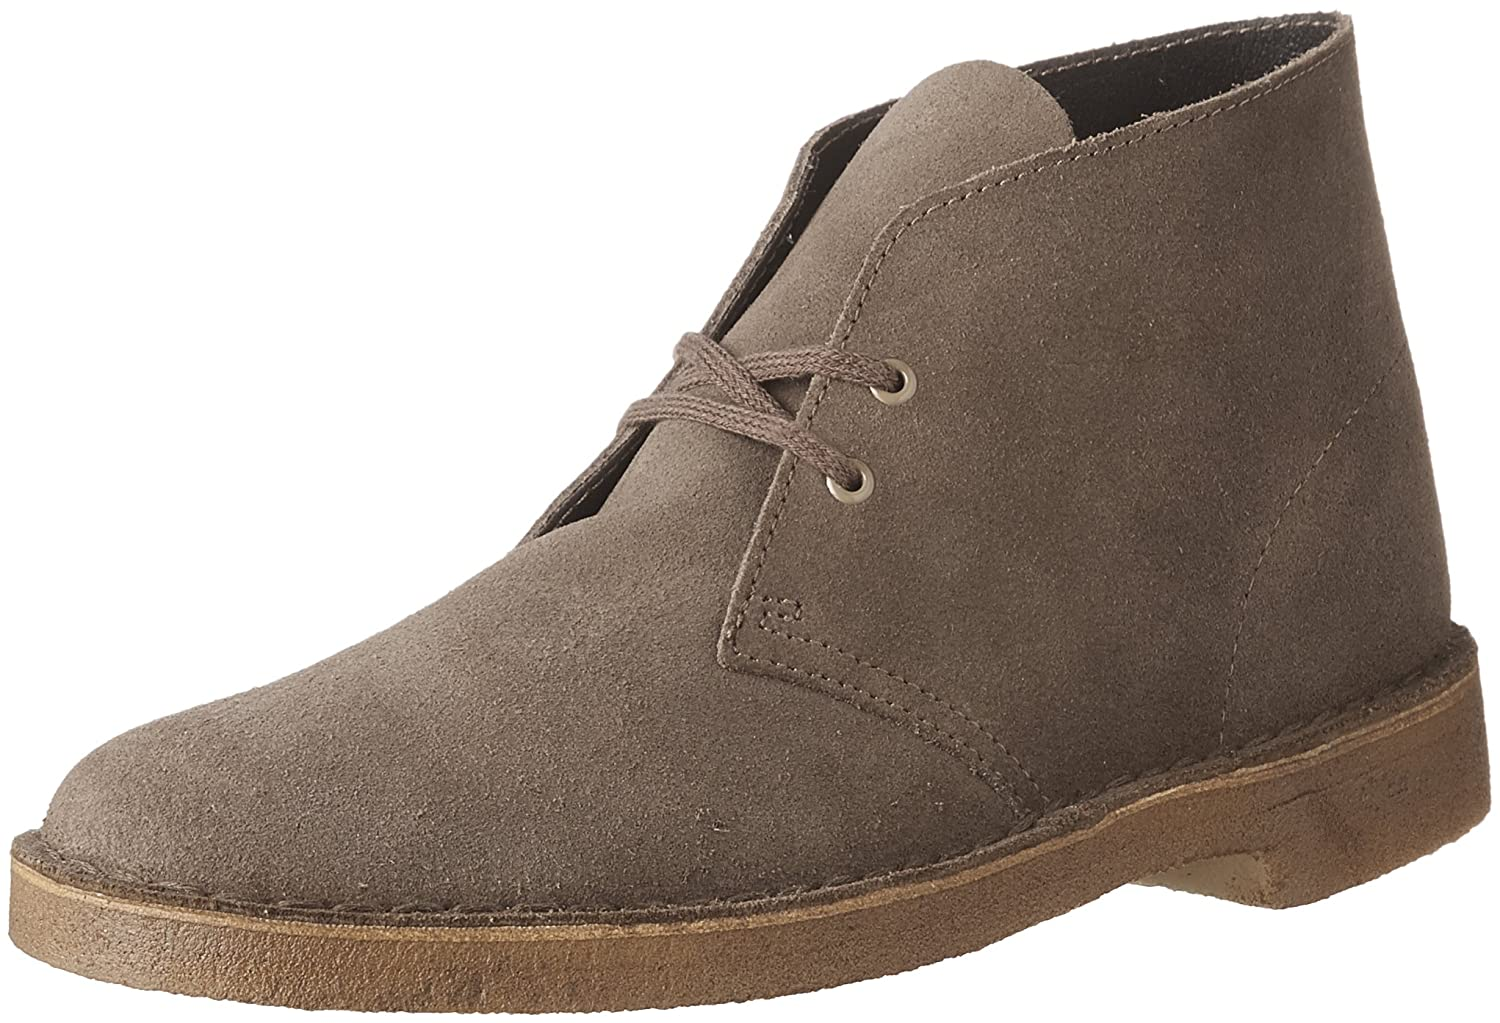 Olive Suede Clarks Men's Desert Boot Ankle Boots